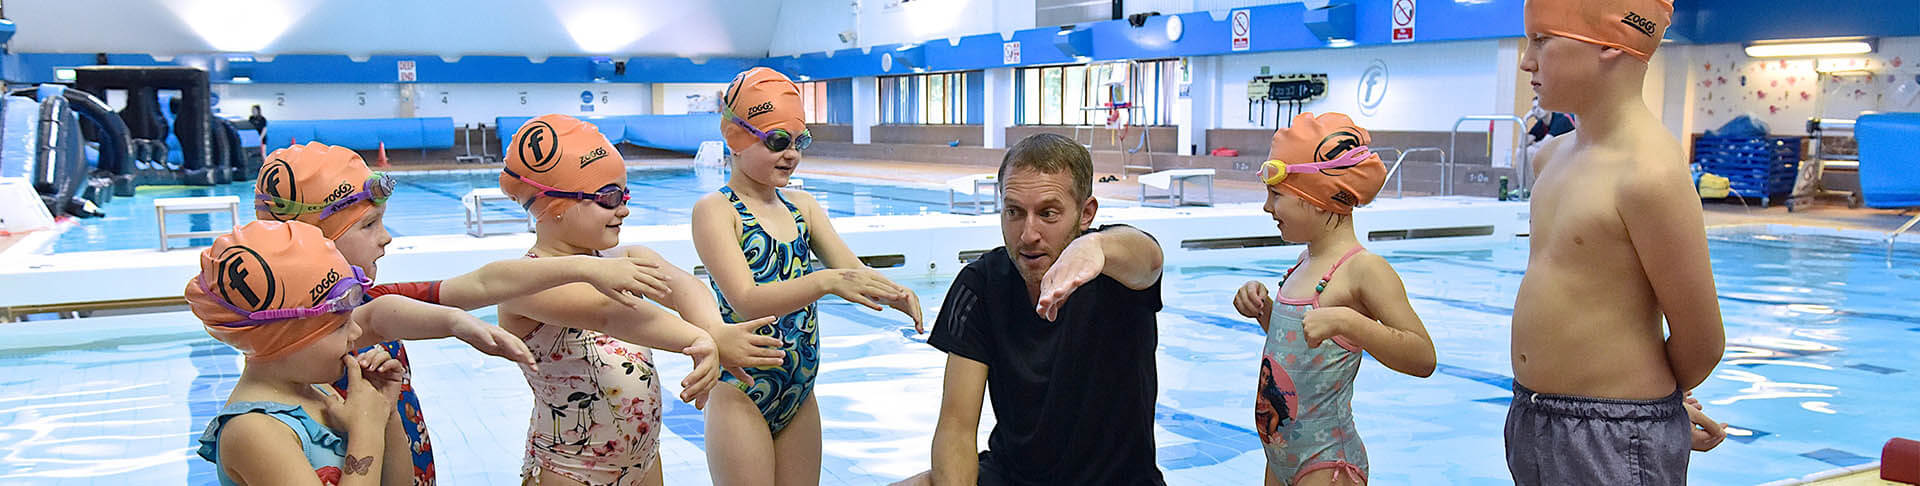 swimming lessons with Freedom Leisure